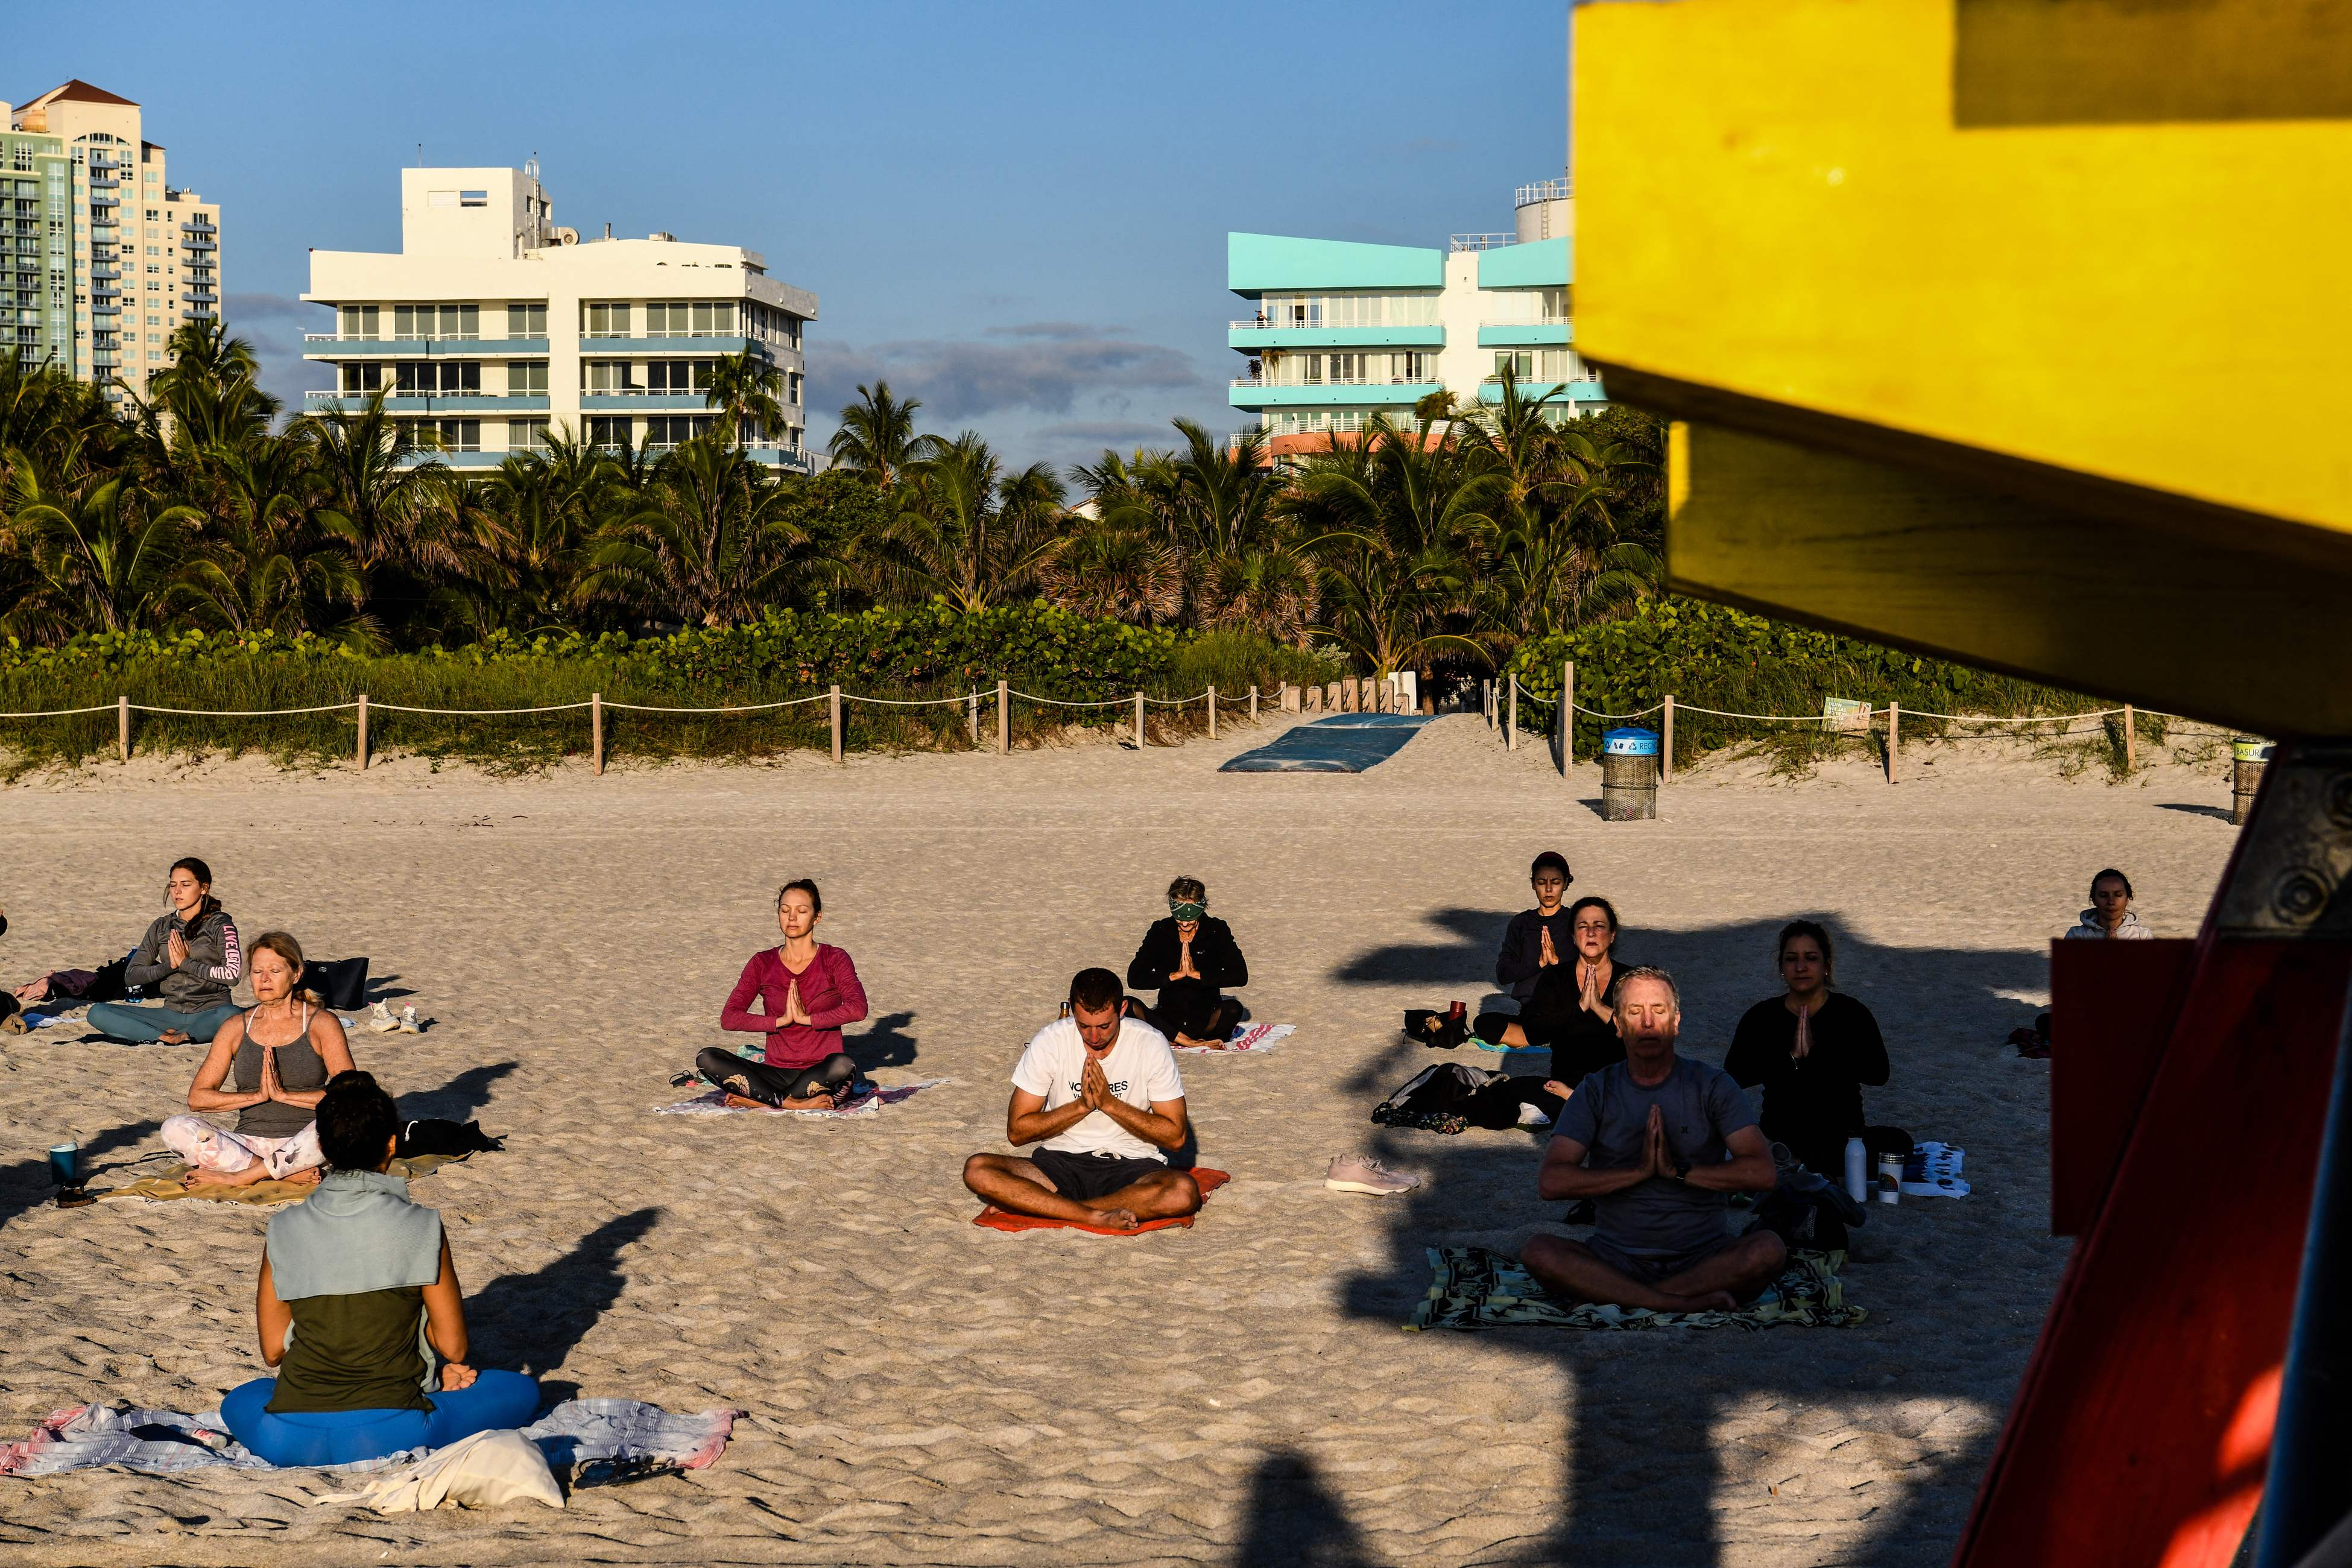 A group of people participate in a yoga session taught by Radha Silva on the beach in Miami Beach, Florida, on March 23, 2021.